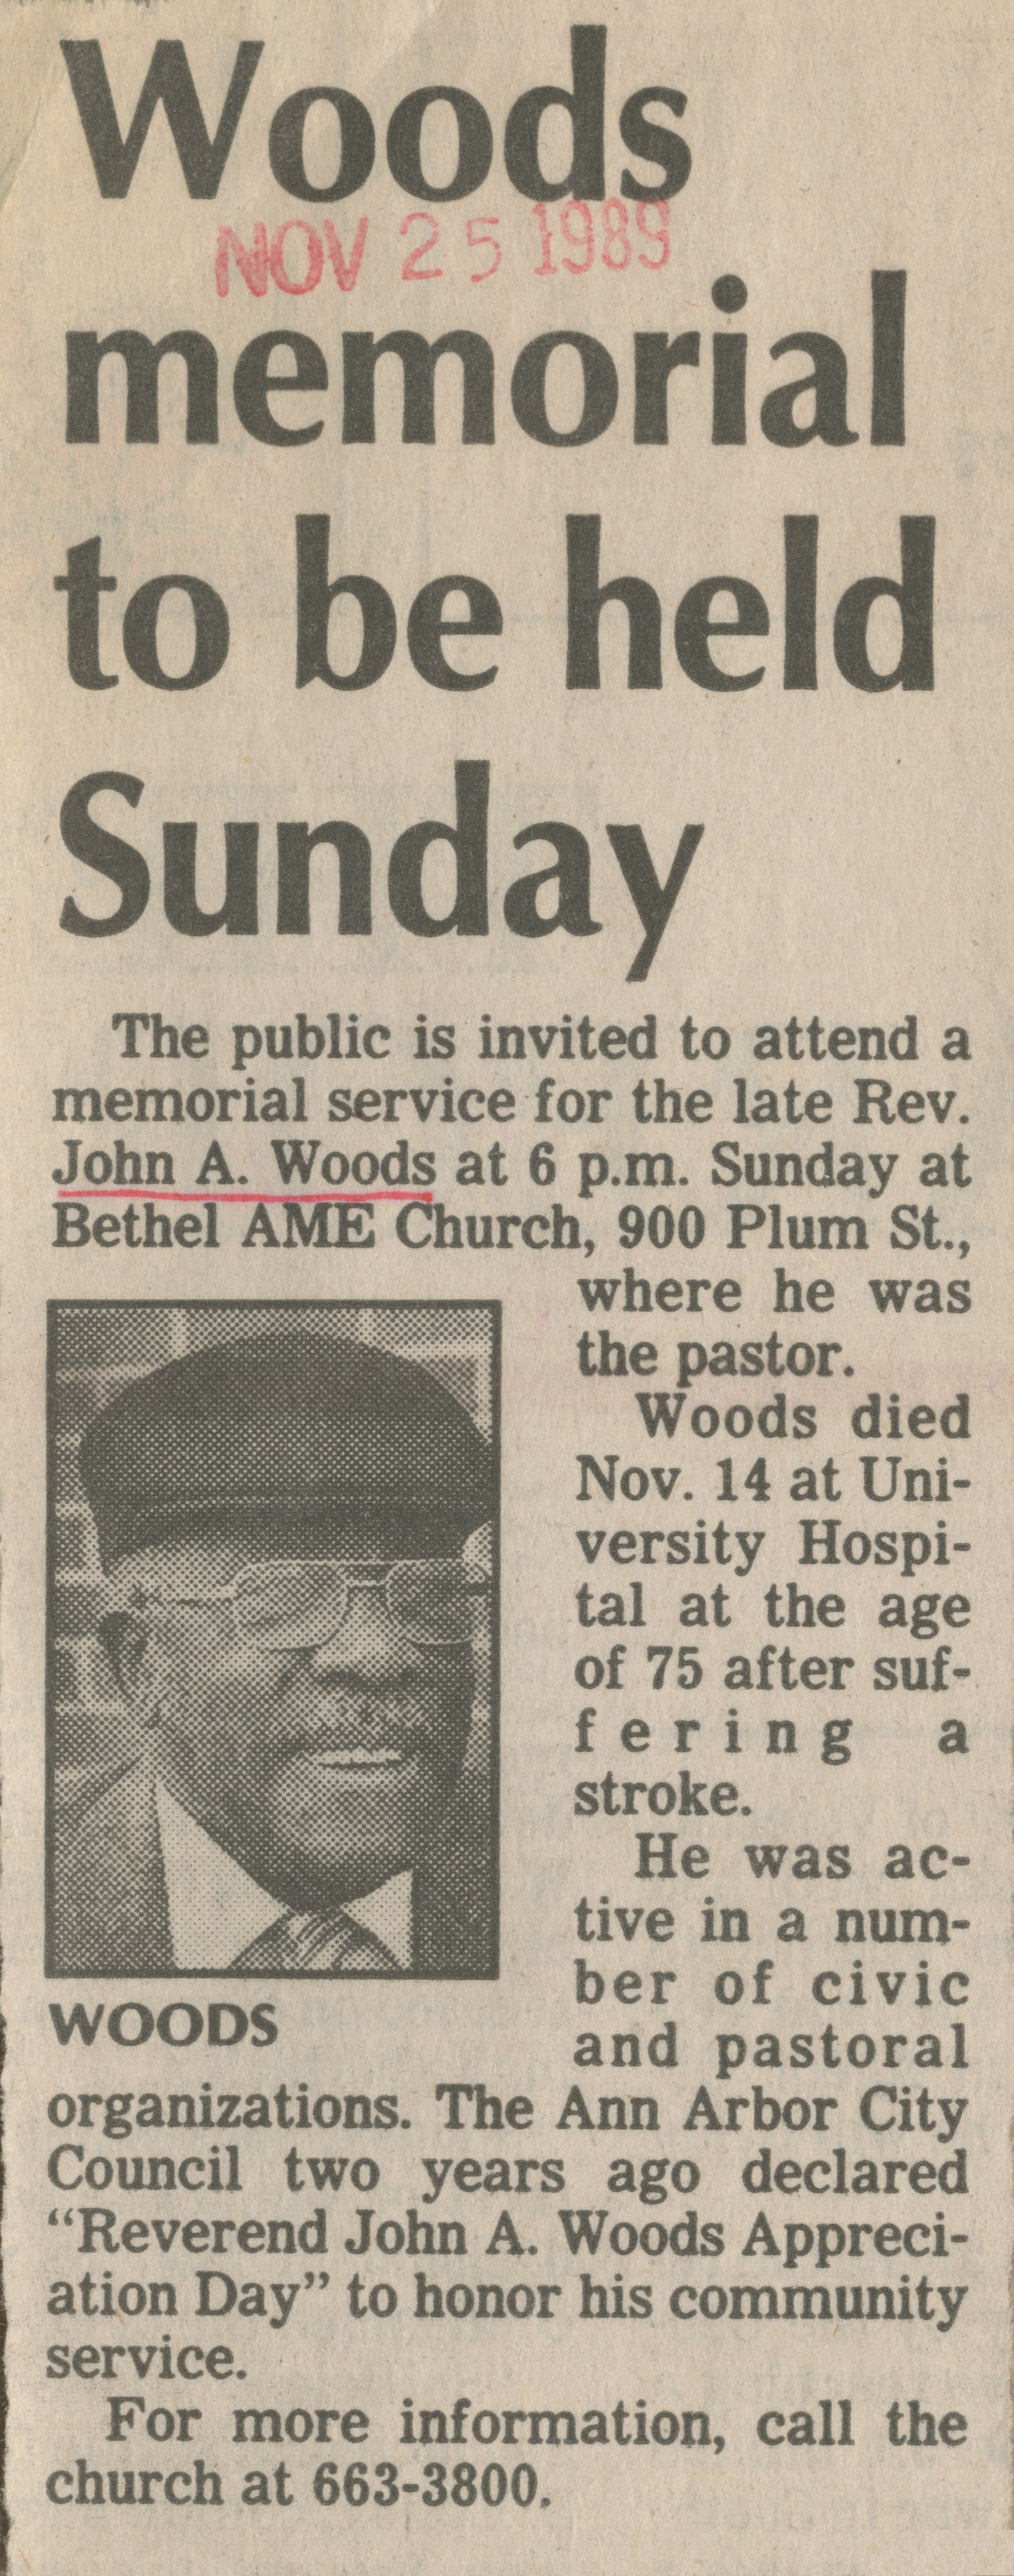 Woods memorial to be held Sunday image